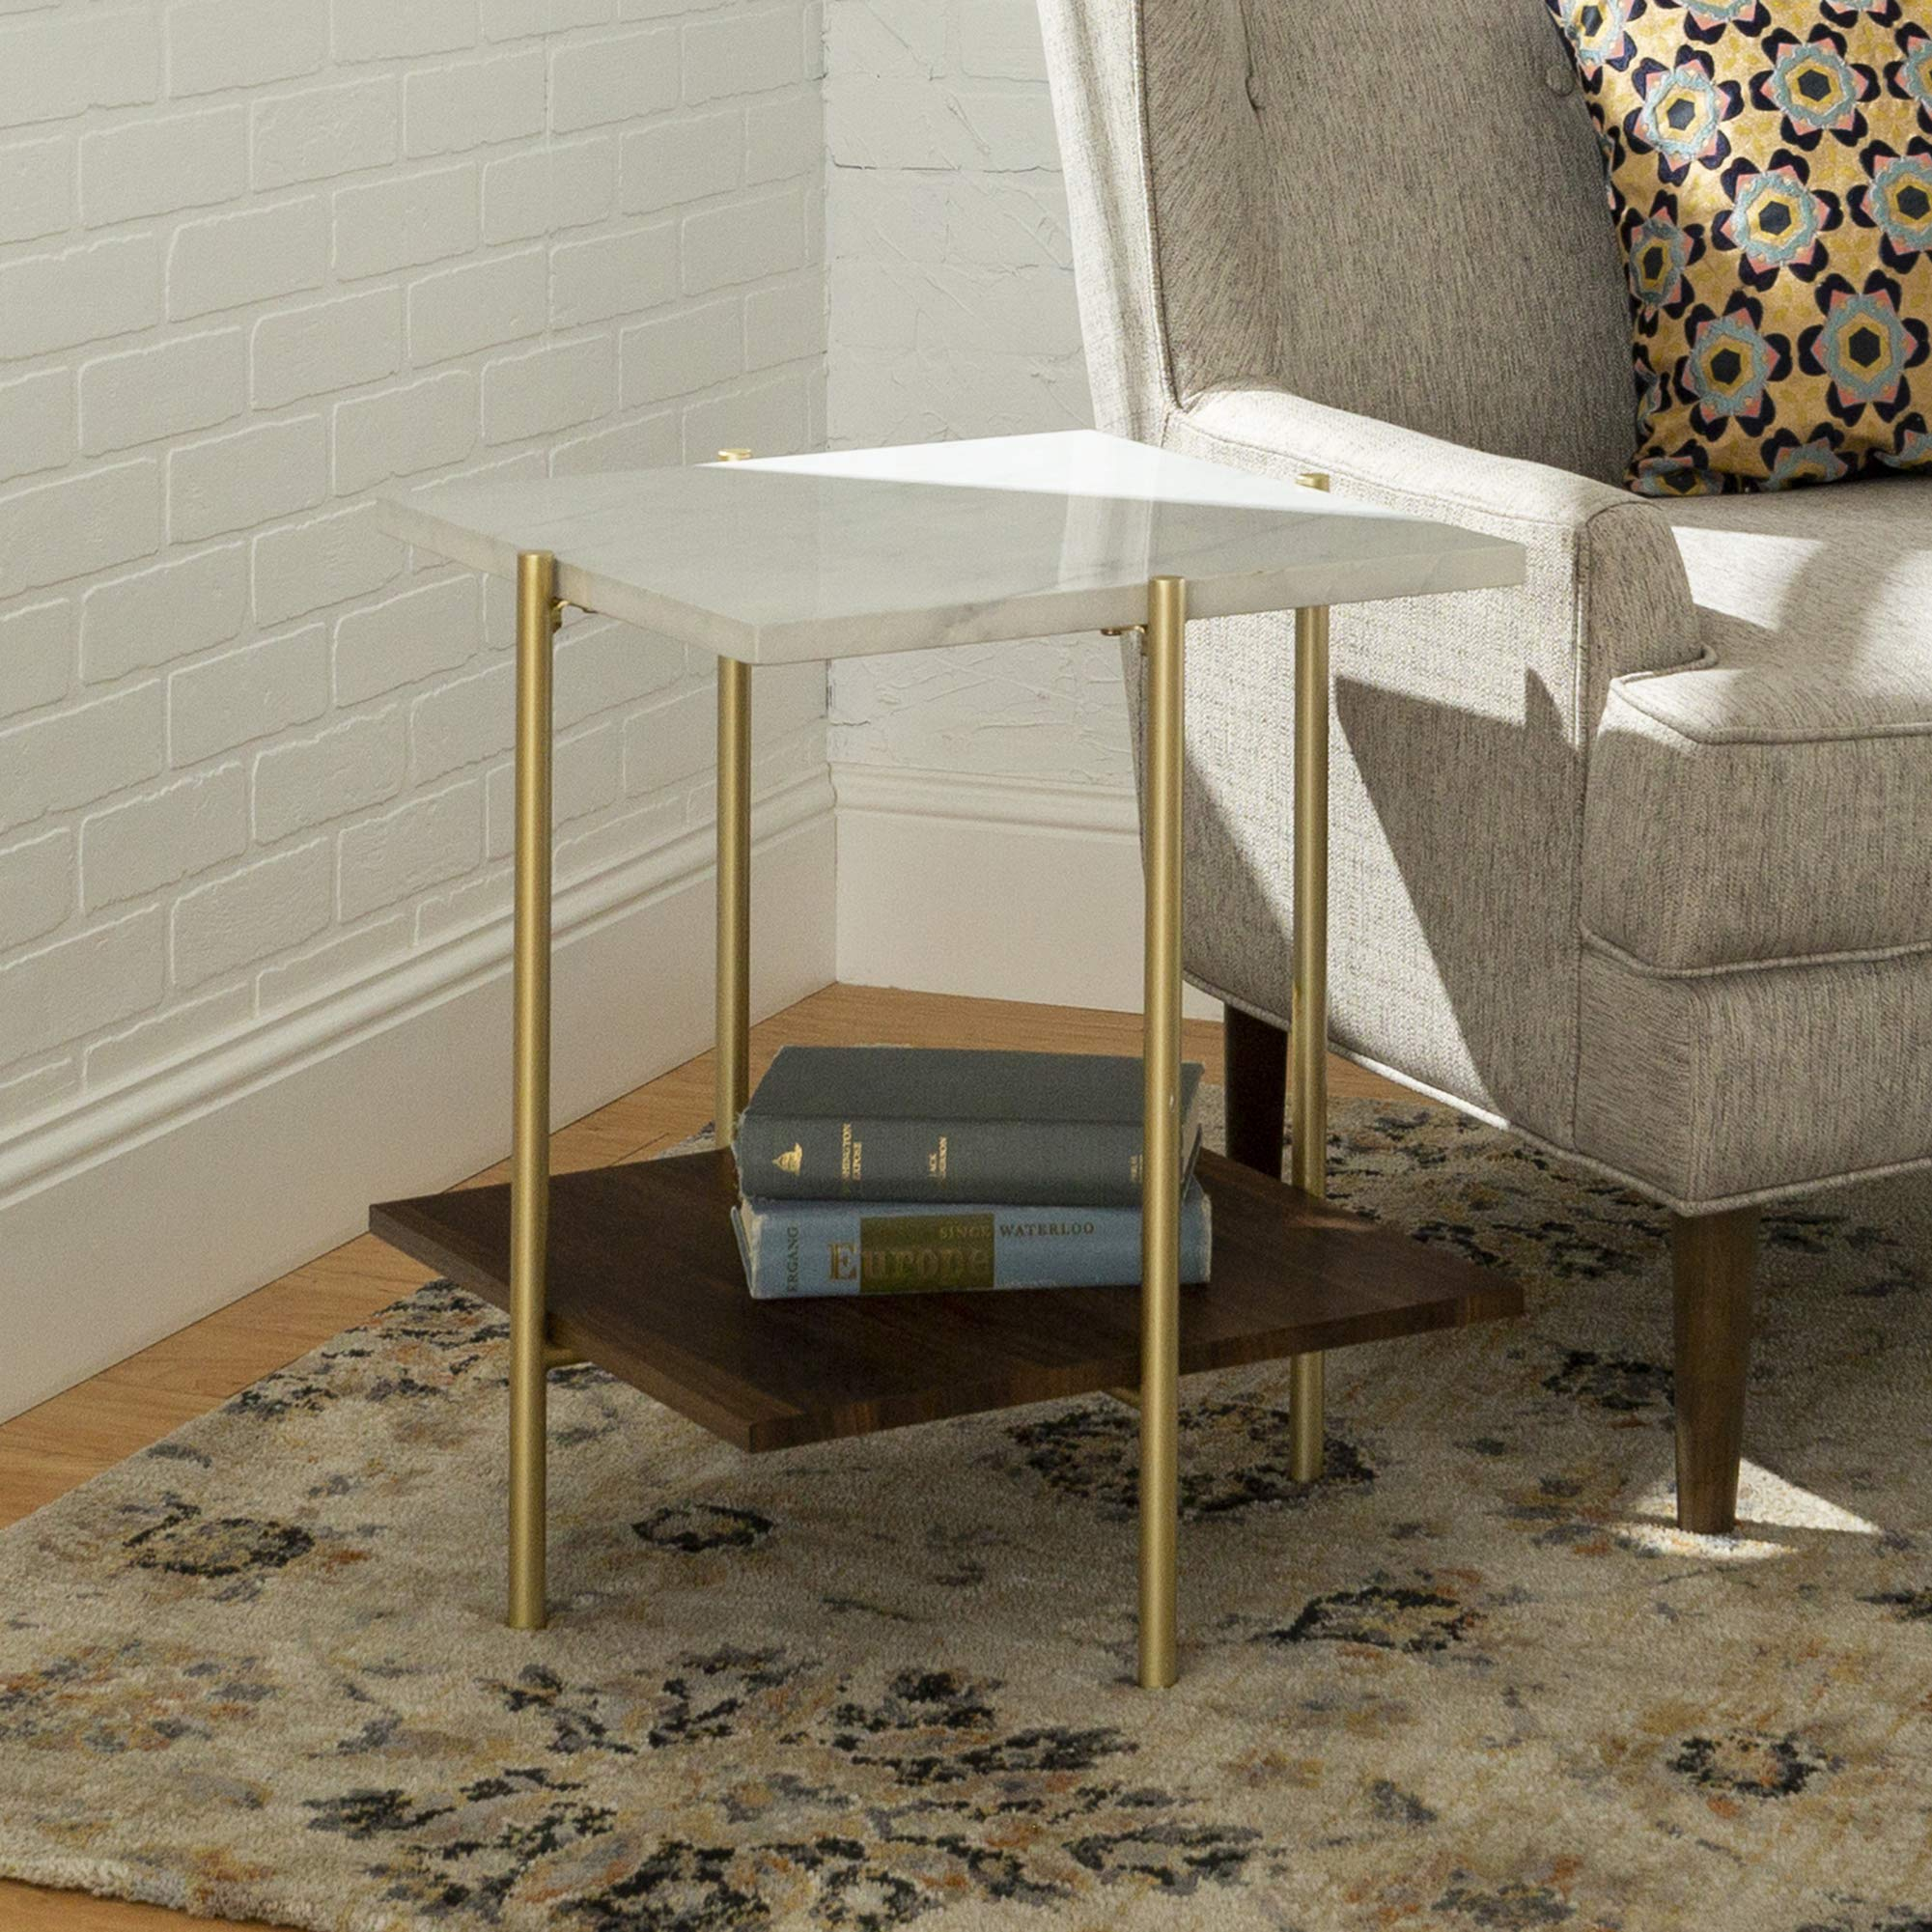 WE Furniture AZF20SSQSTMGD Mid Century Modern Square Side End Accent Table Living Room, 20 Inch, White Marble/Gold by WE Furniture